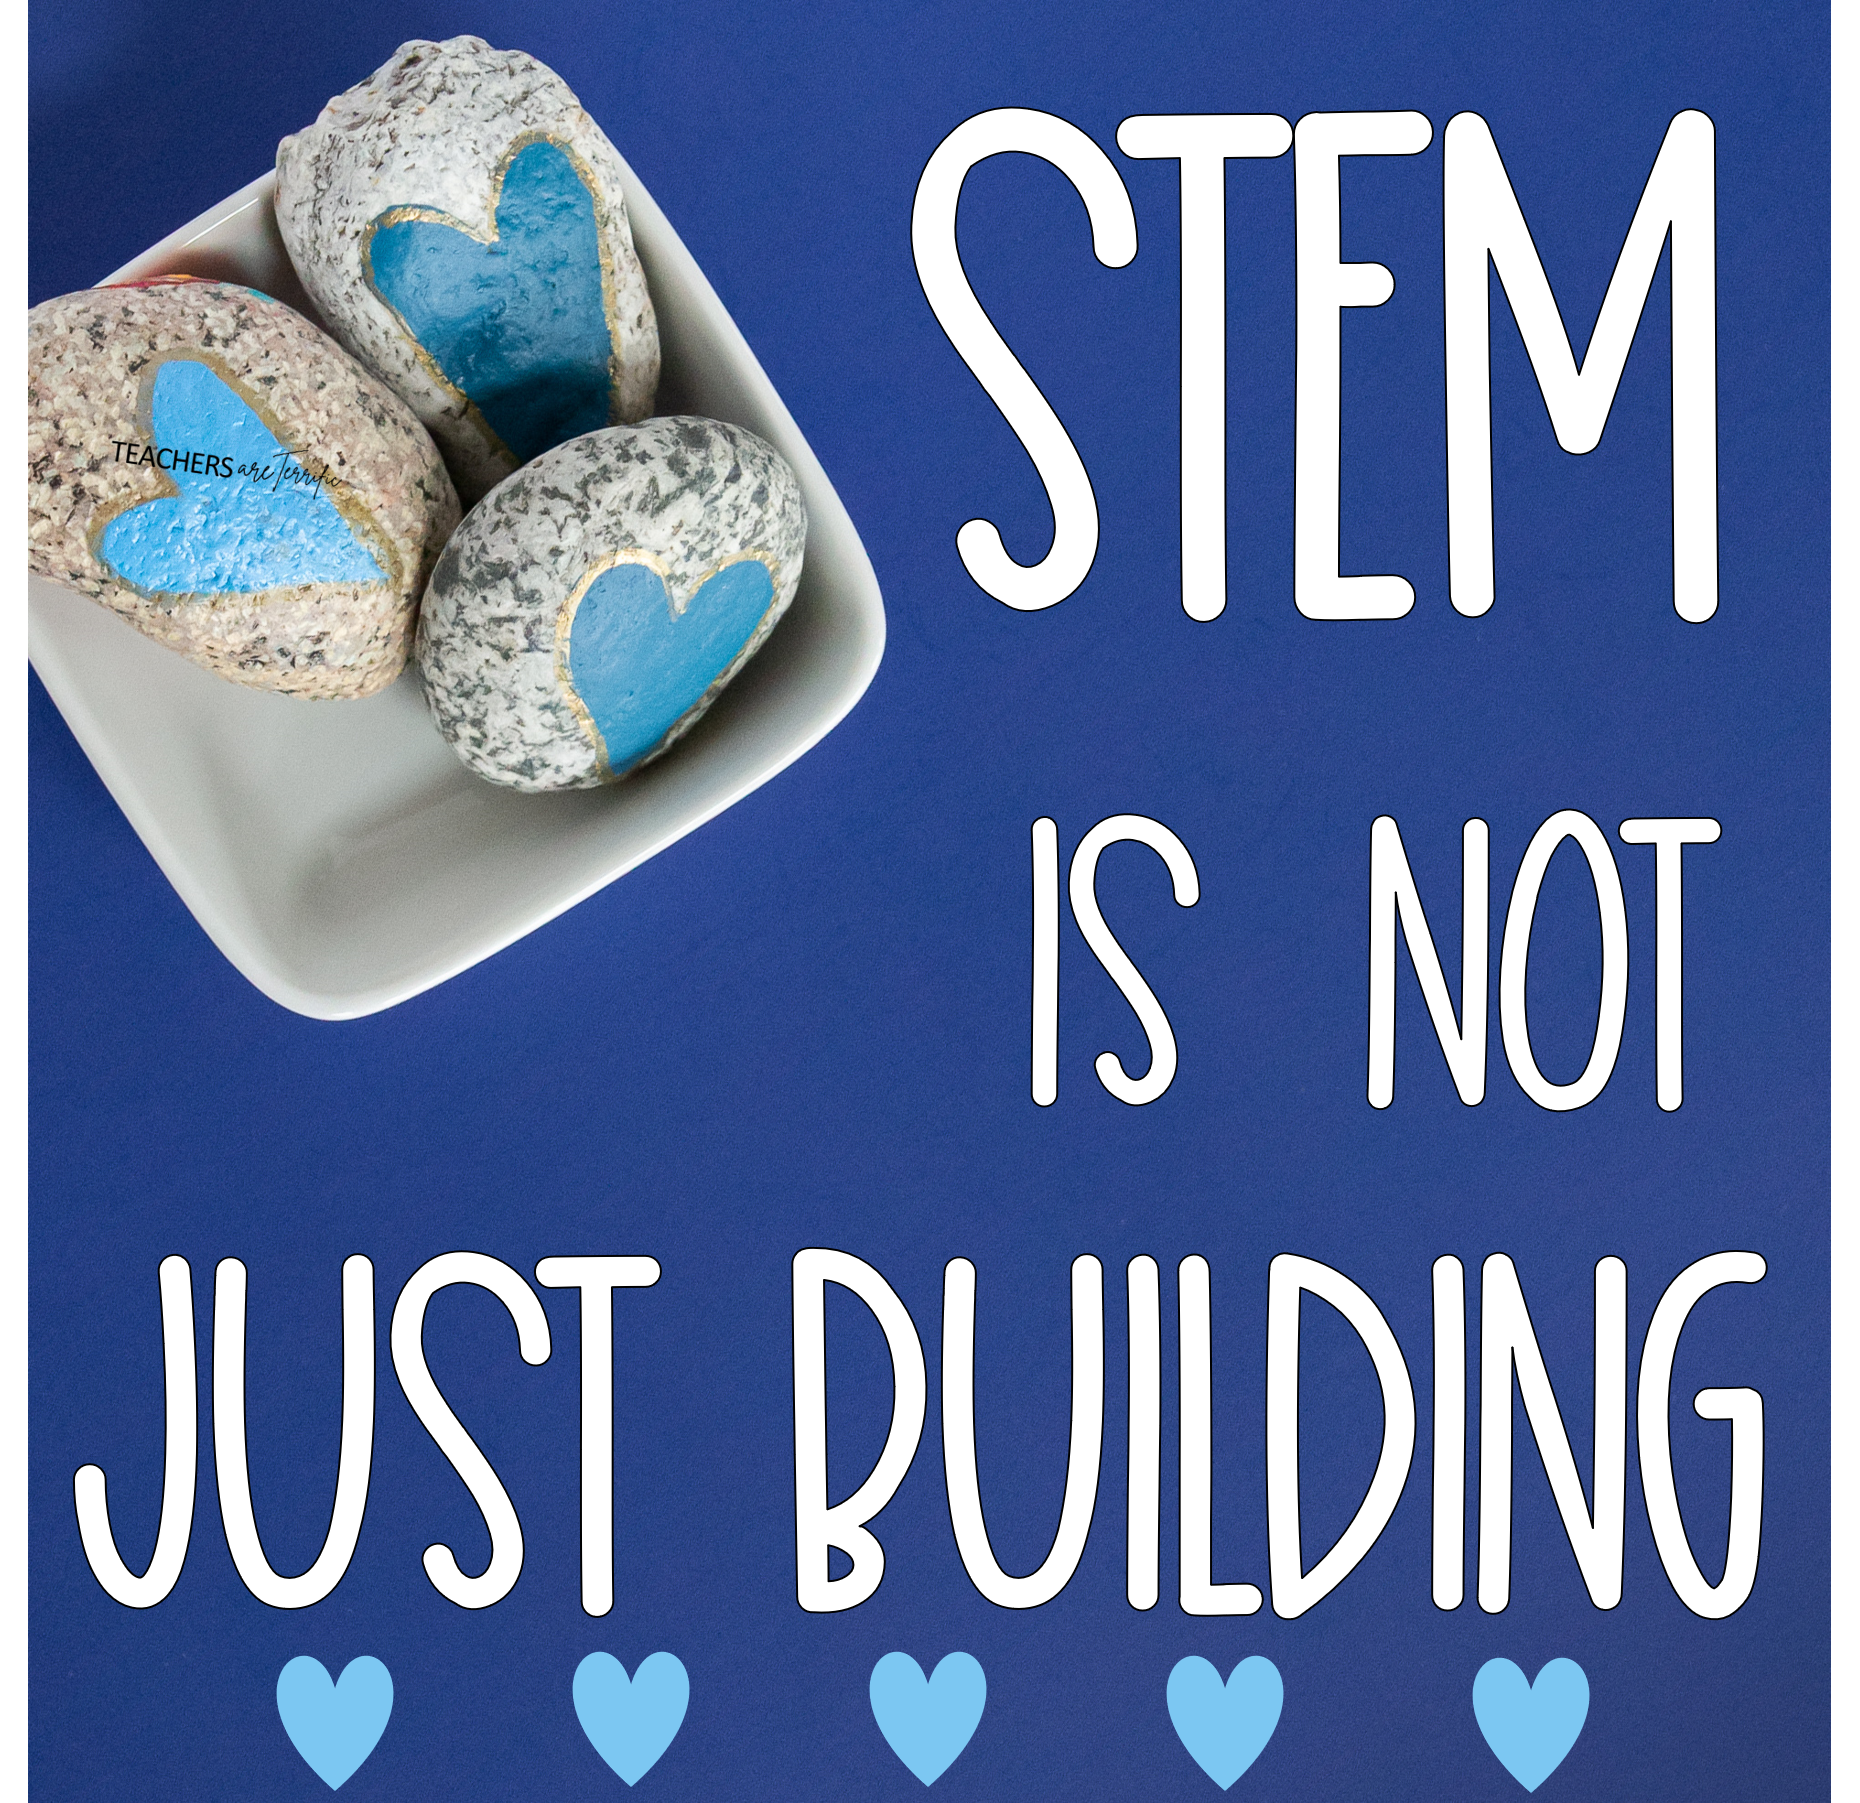 STEM Projects do mean building structures, but sometimes you can add experimenting with models or competing with models.